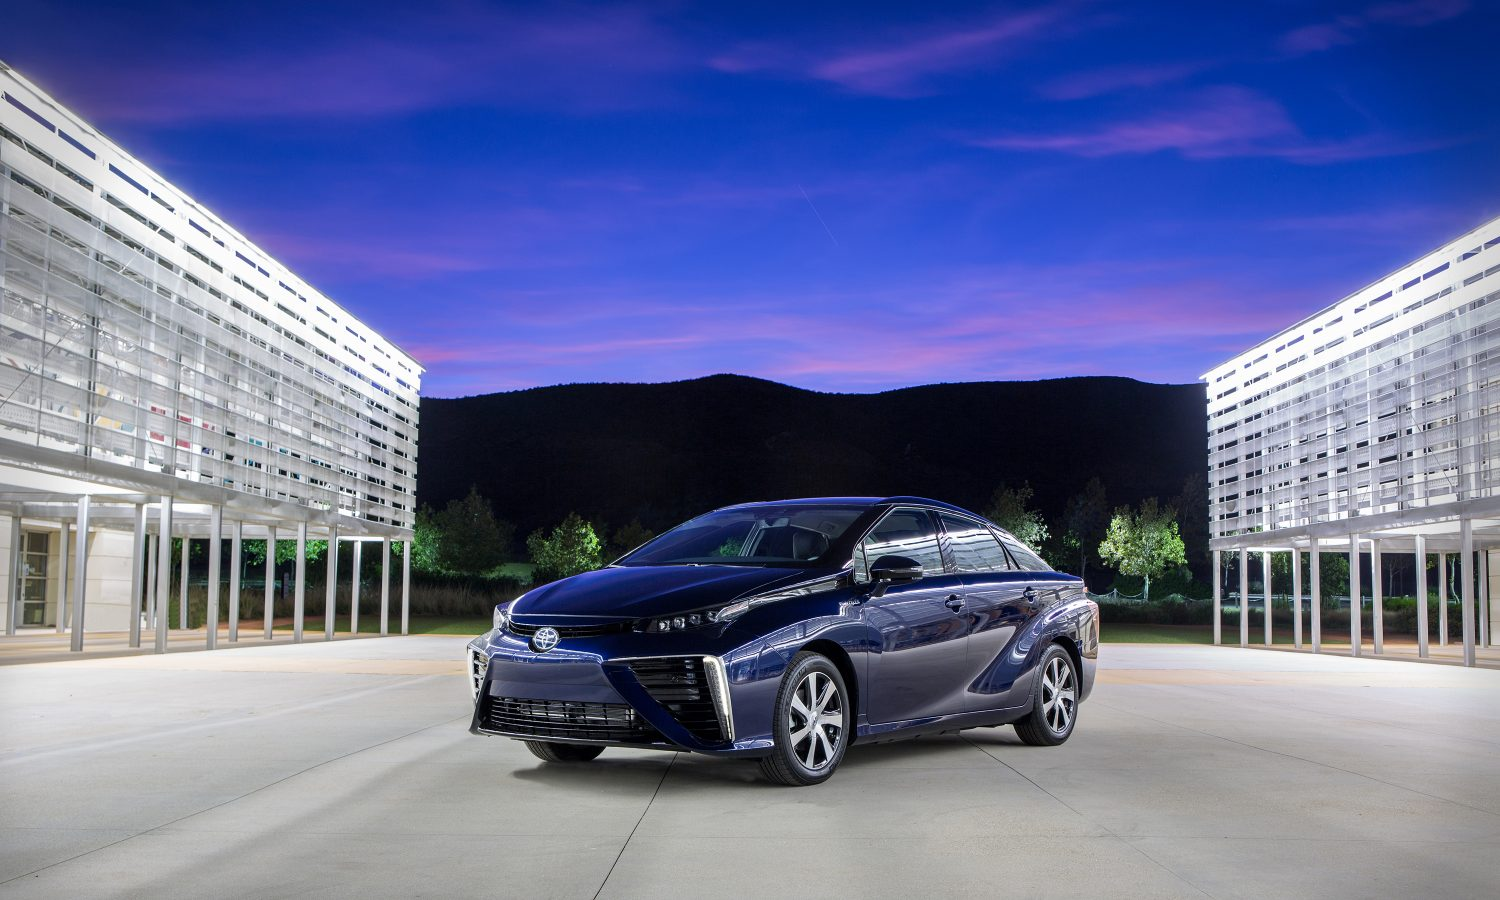 2016 Toyota Mirai Fuel Cell Sedan